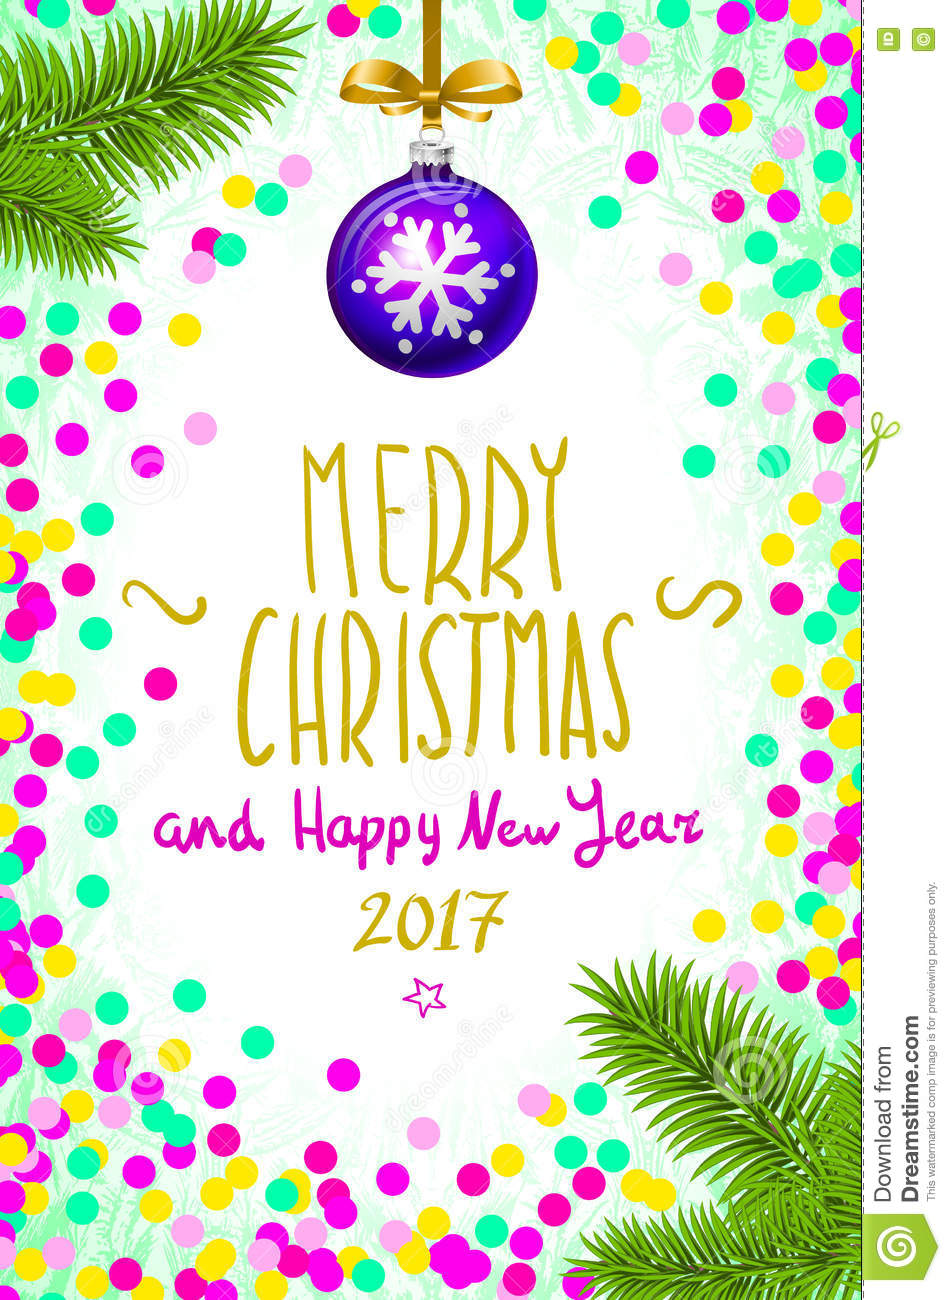 Merry Christmas And Happy New Year 2017 Greeting Card, Illustration ...